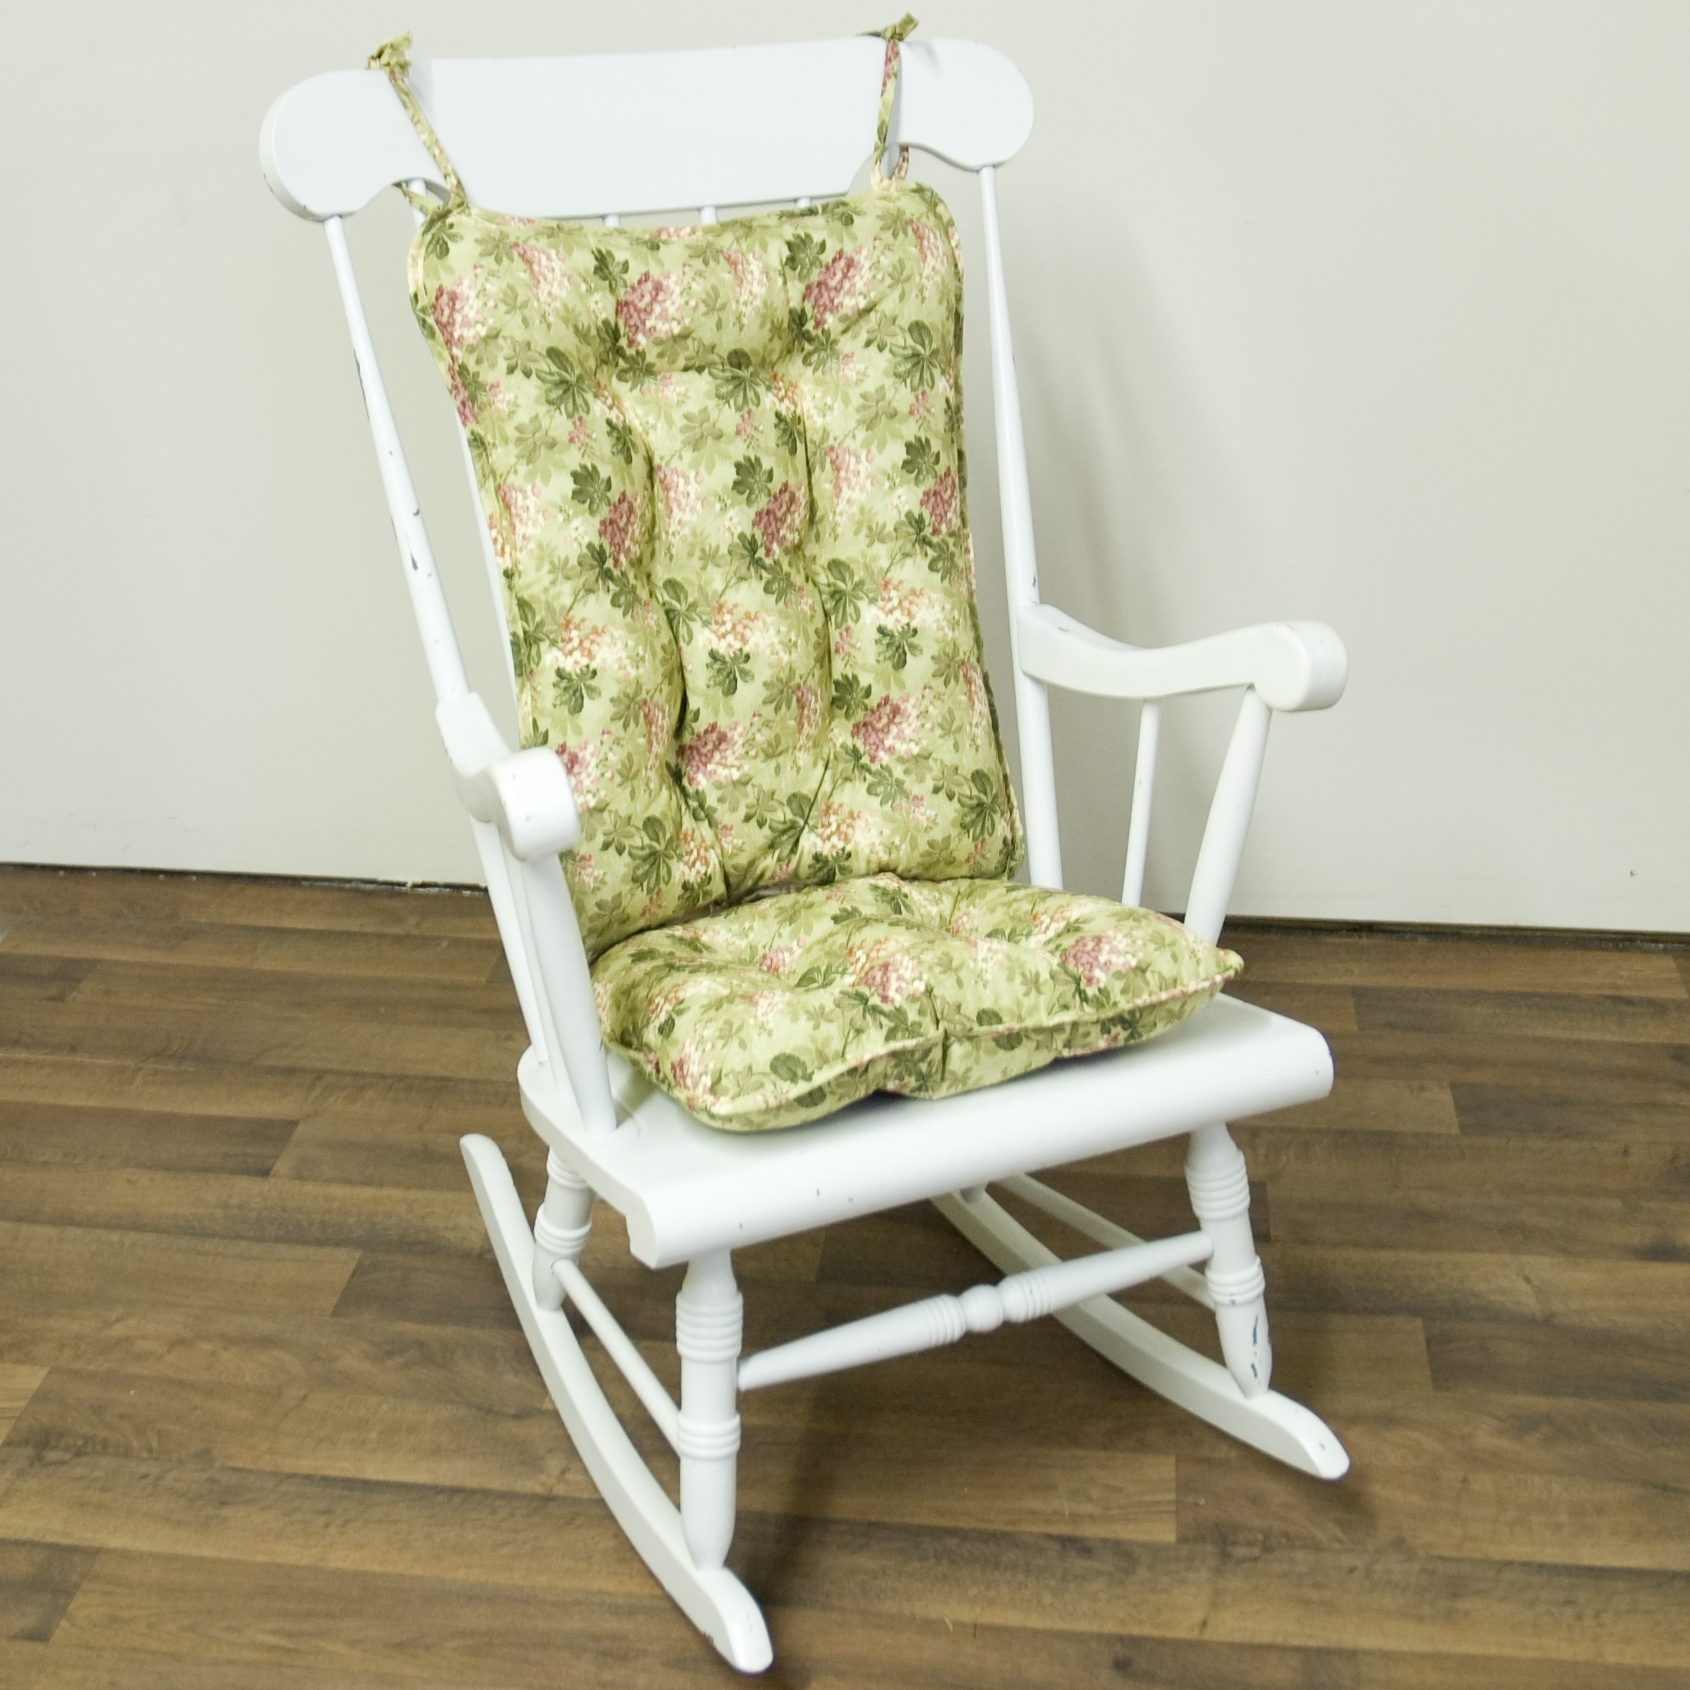 Widely Used Retro Outdoor Furniture : Probably Super Nice Cushions For Rocking Within Retro Outdoor Rocking Chairs (View 14 of 15)